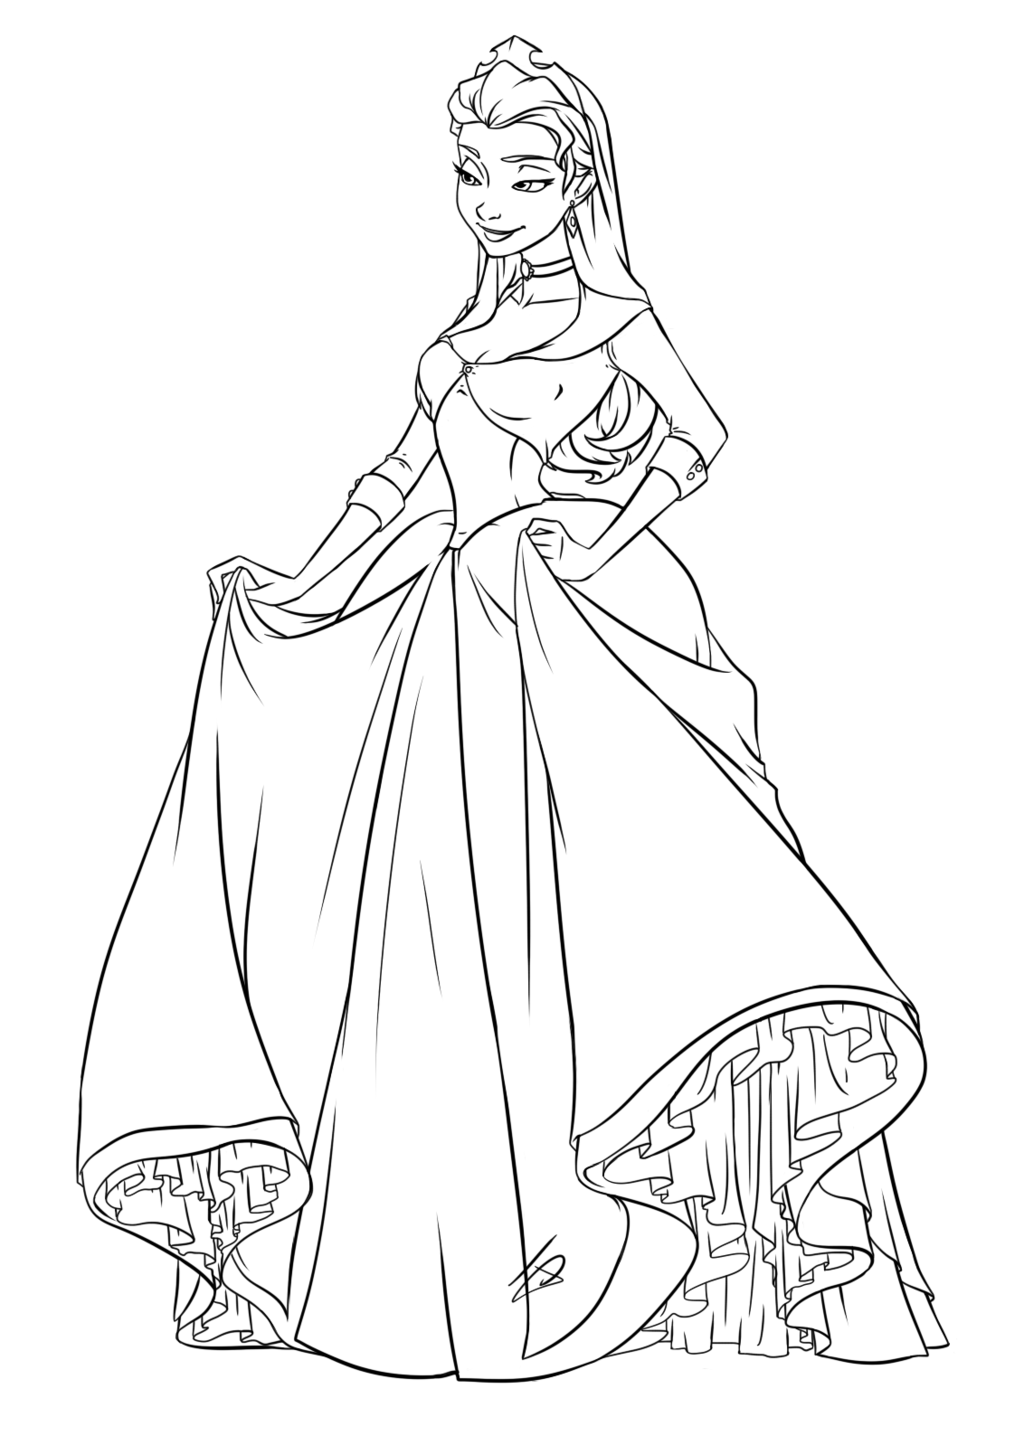 Princess Amber By Jessdeaton On Deviantart Princess Coloring Pages Cartoon Coloring Pages Barbie Coloring Pages